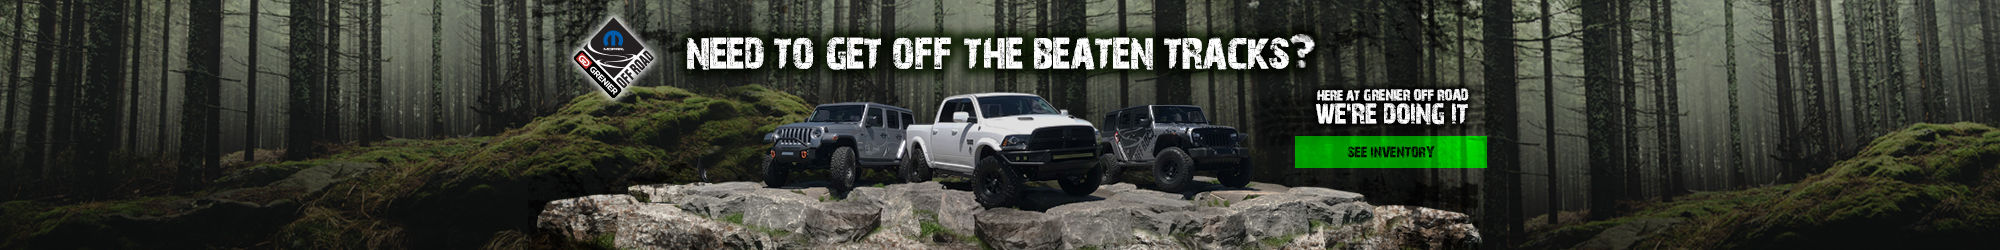 GRENIER OFF ROAD see inventory